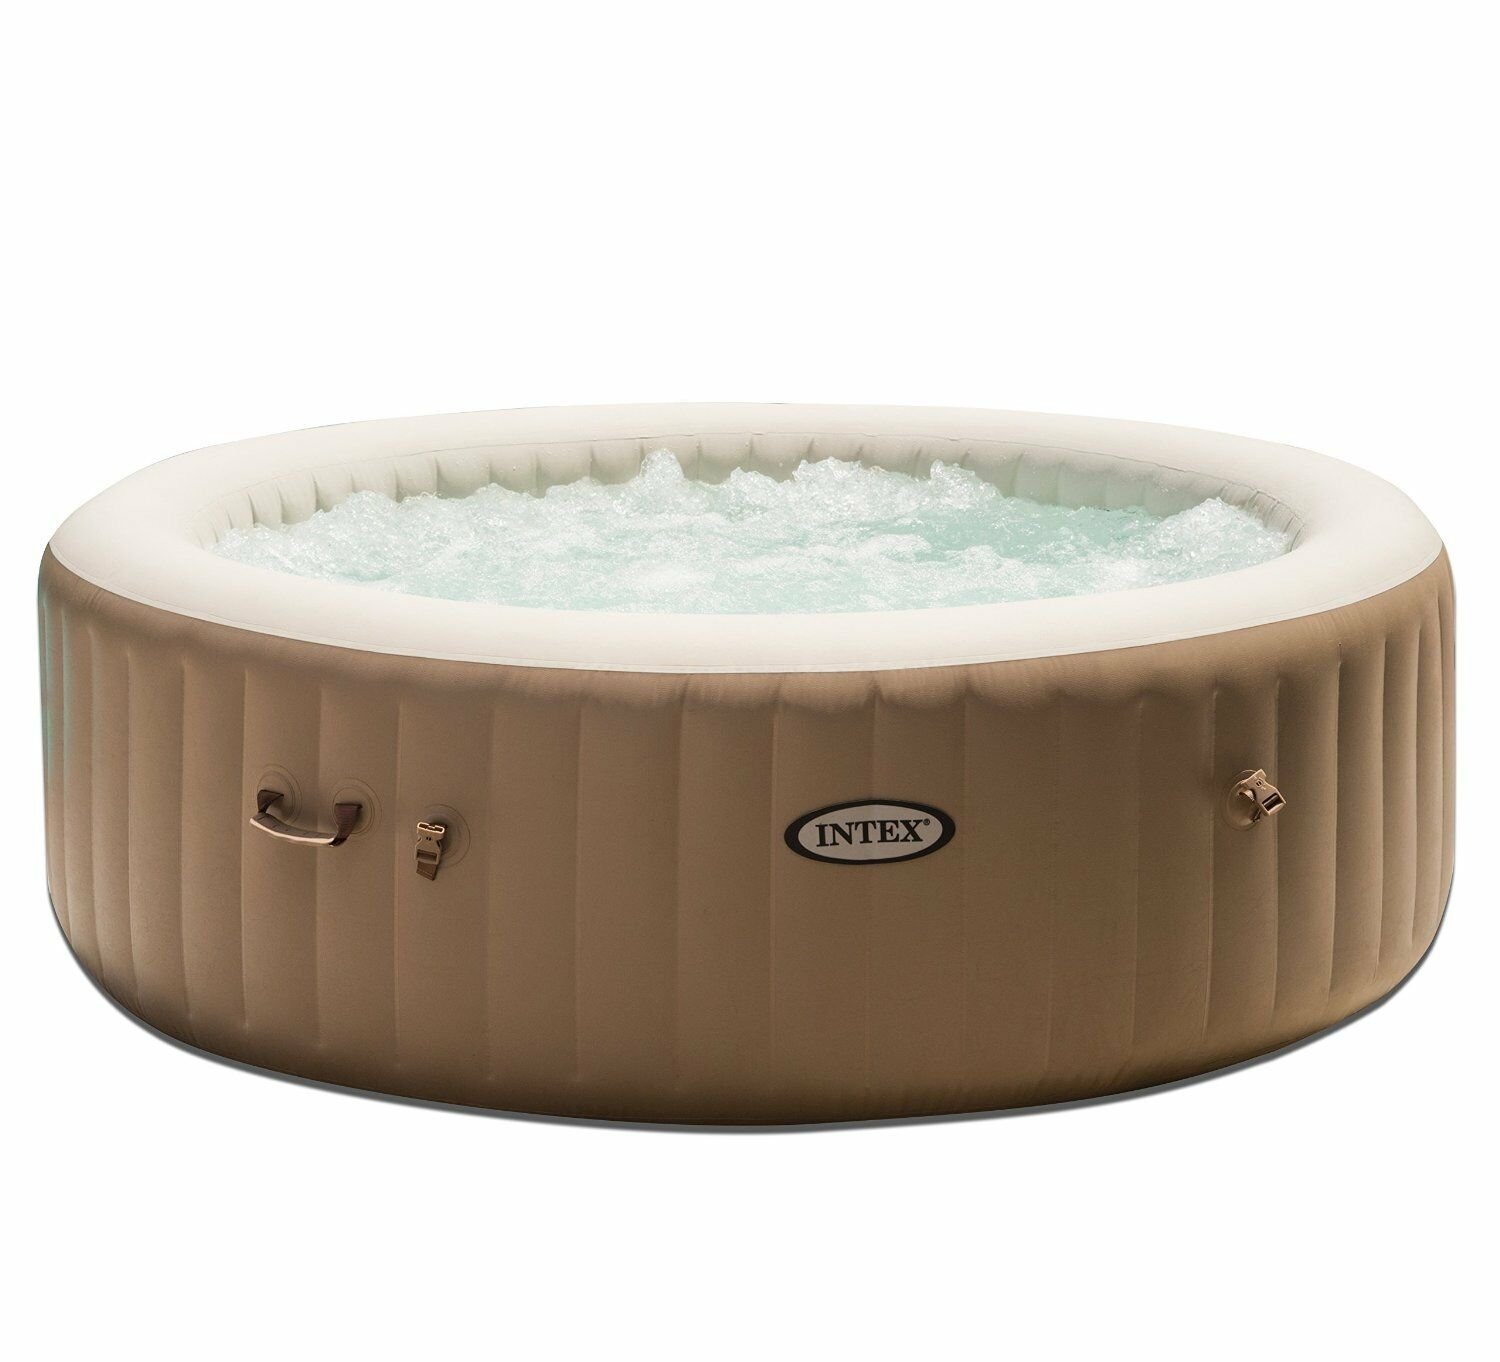 6 7 Capacity Spas Hot Tubs